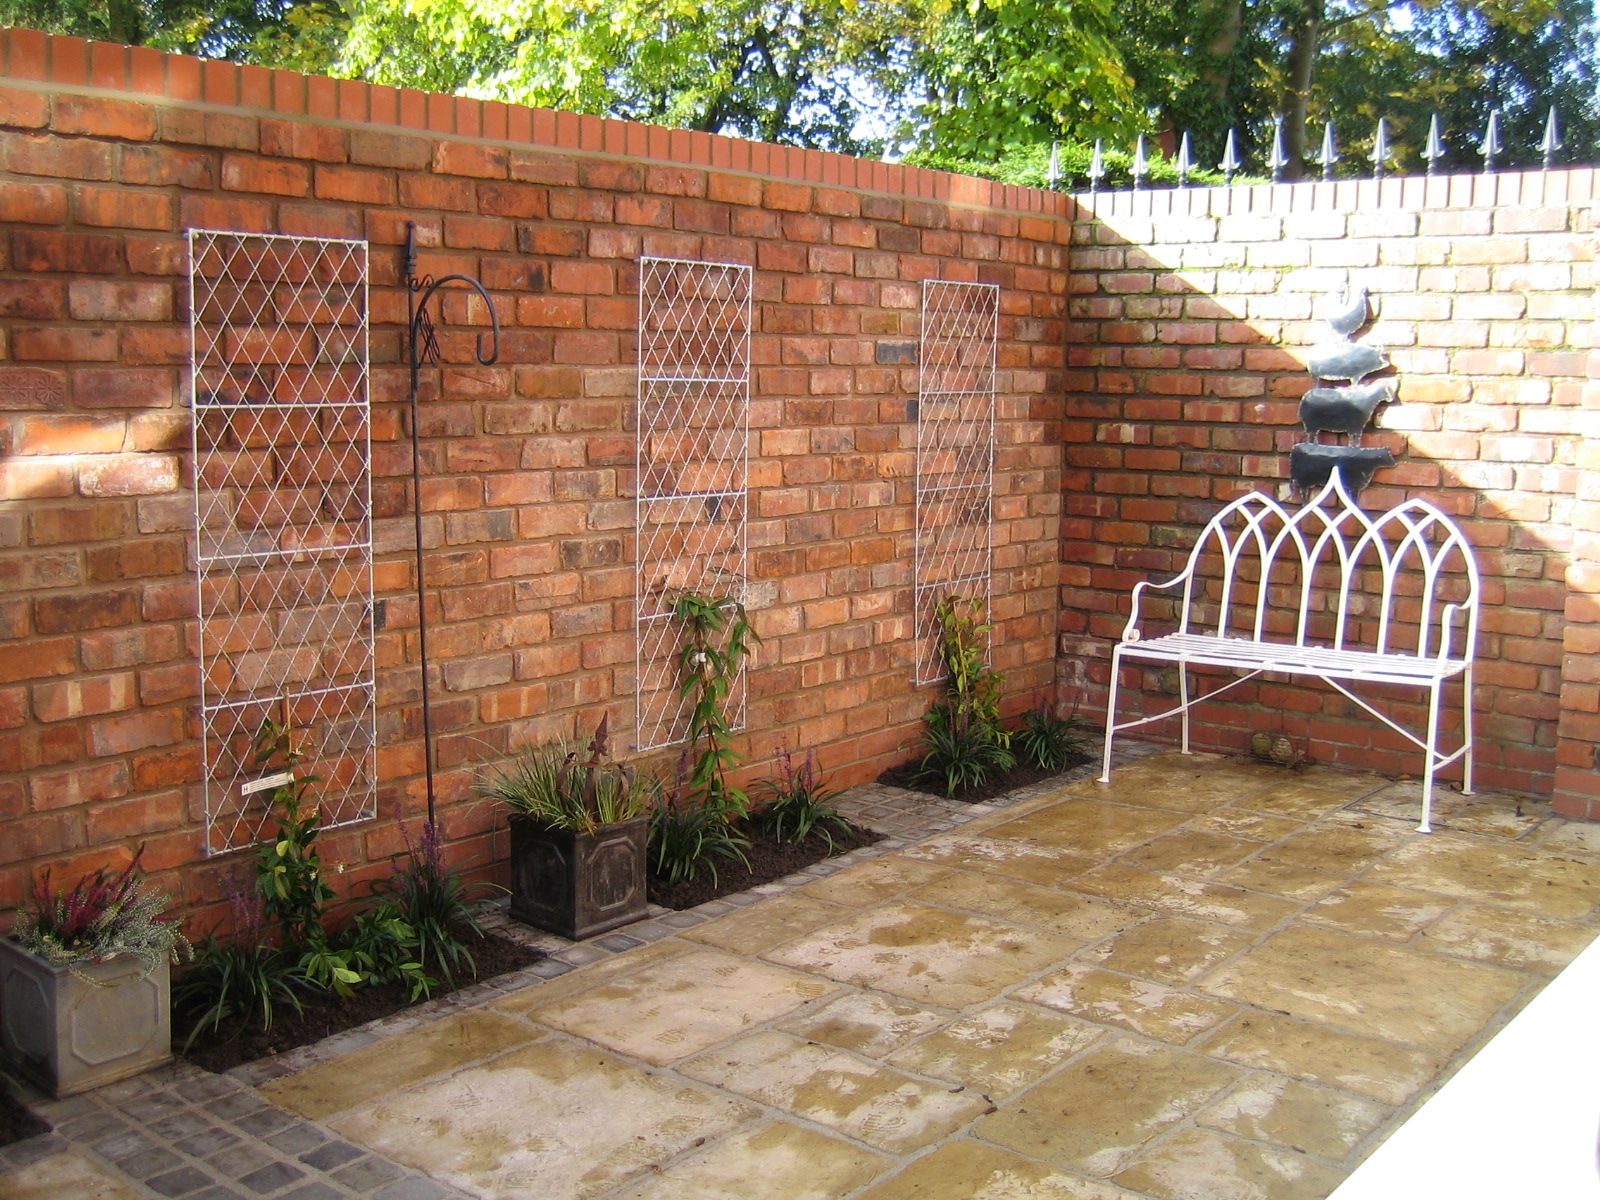 Reclaimed brick walls in a small courtyard garden from a for Garden brick border designs